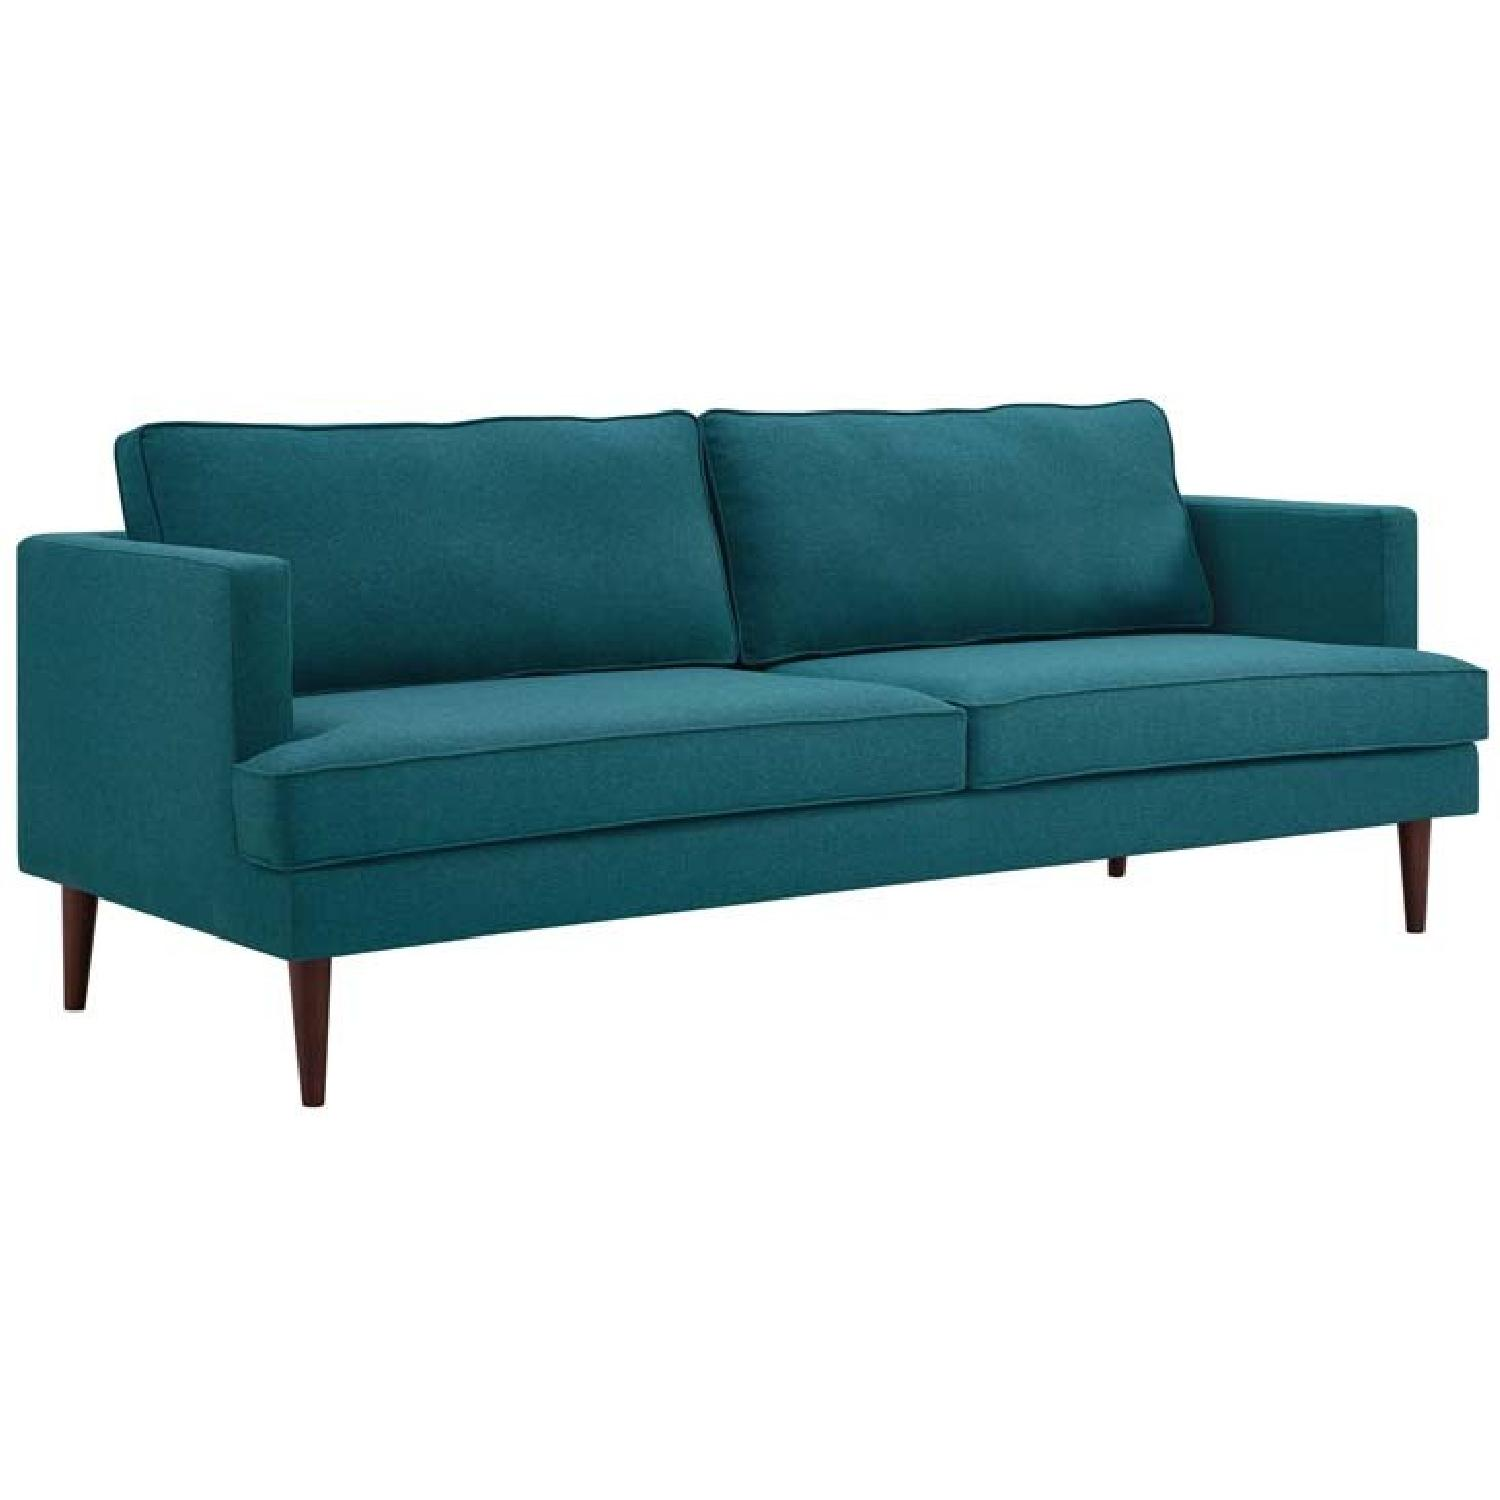 Manhattan Home Design Agile Upholstered Fabric Sofa